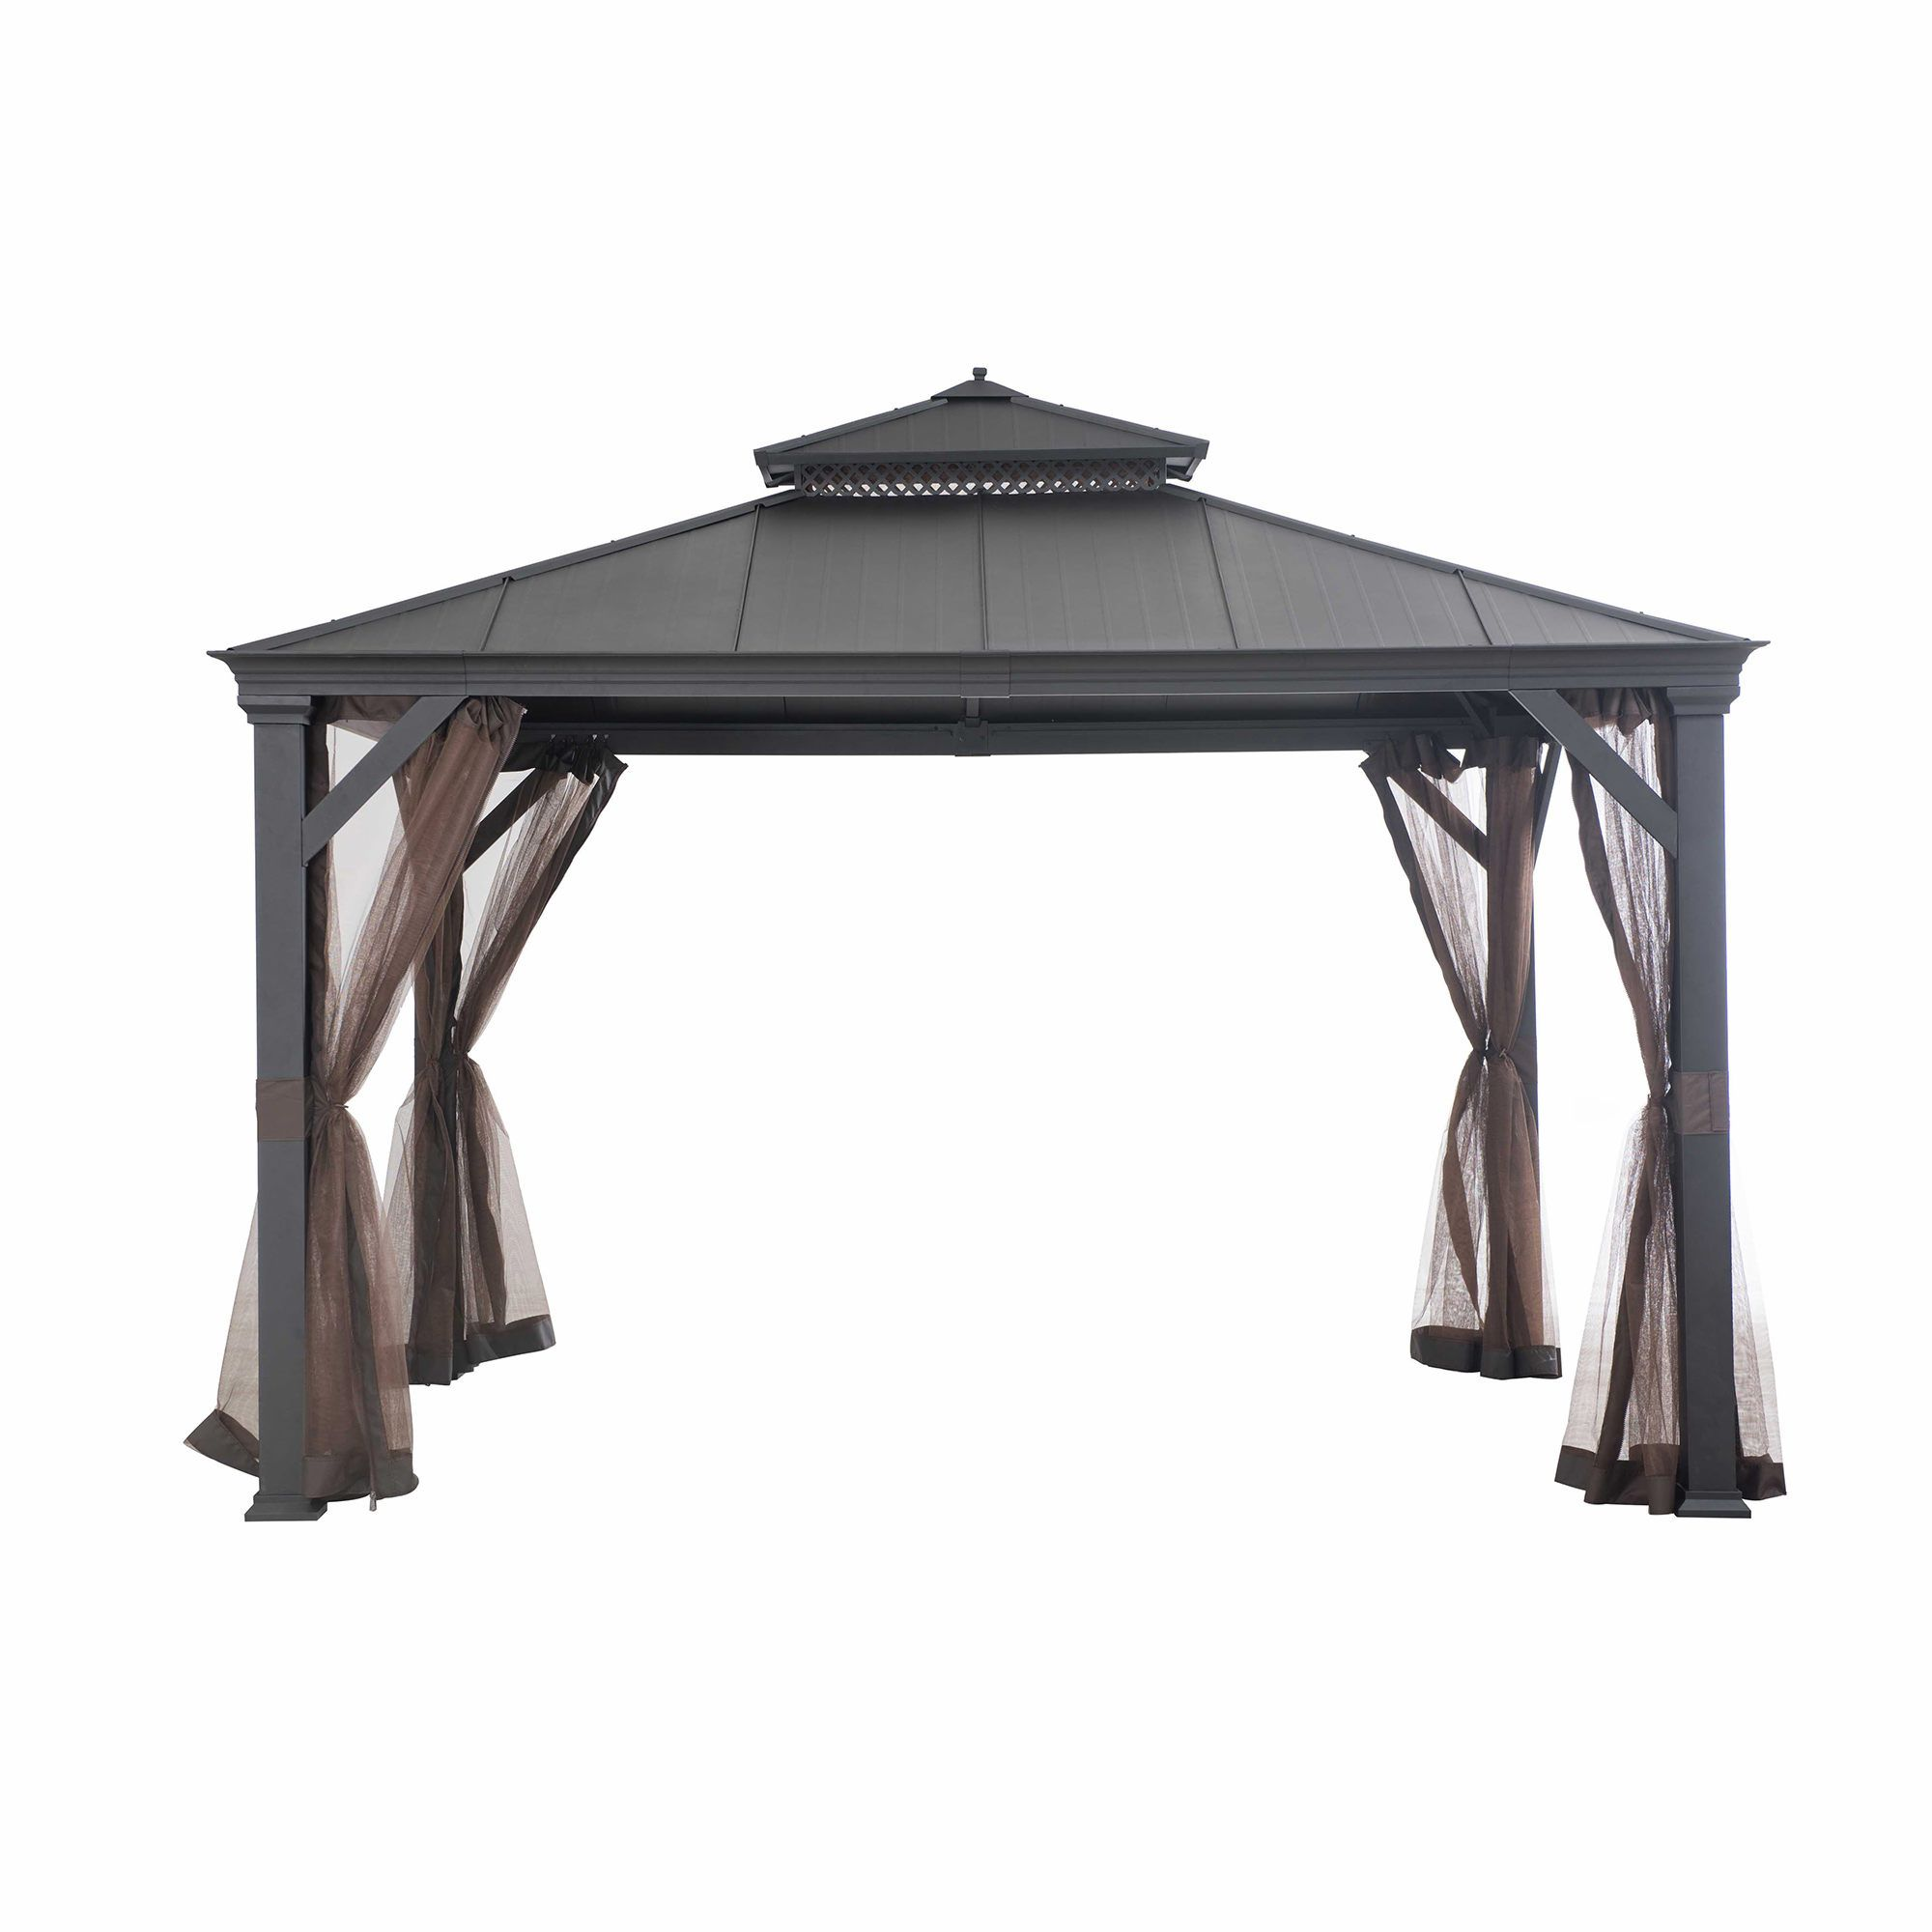 Patio Sun Shelter Pool Furniture Gazebo 10 X 12 Ft Hardtop Steel Roof Garden Set Sales Home Garden Discounts Hardtop Gazebo Patio Gazebo Aluminum Gazebo